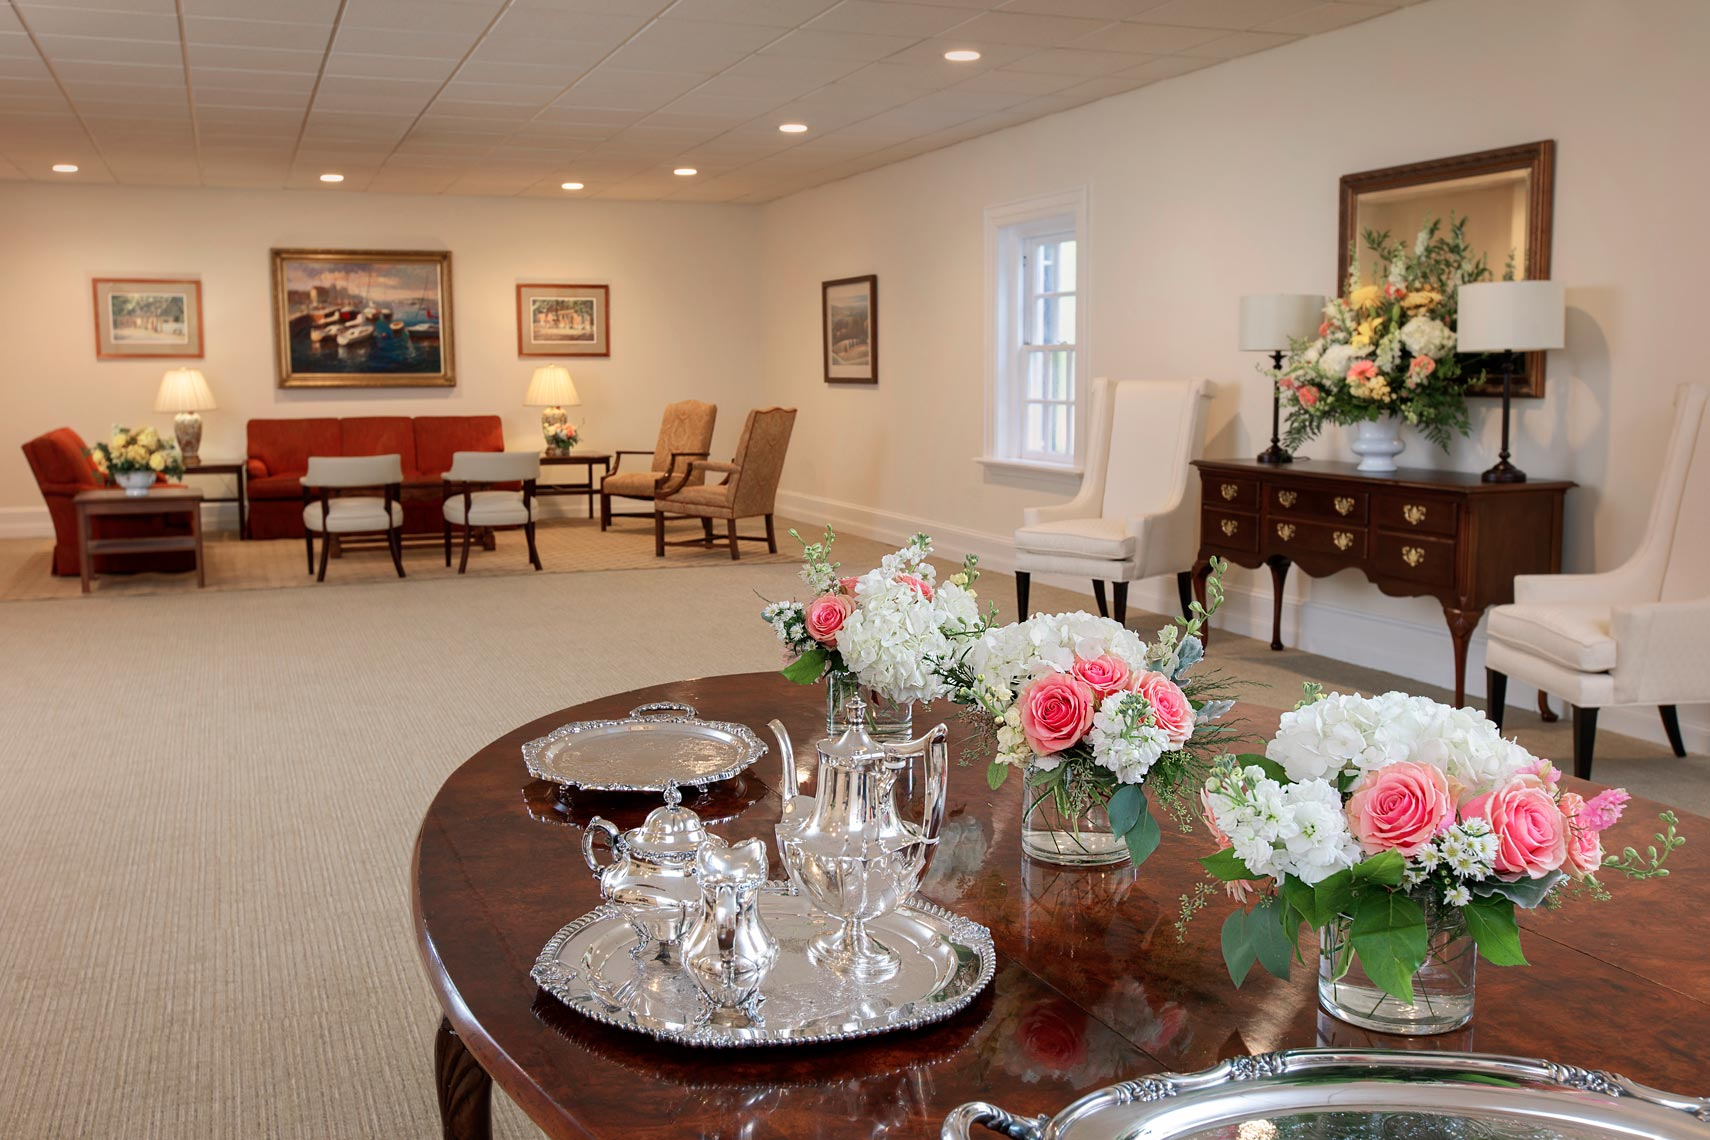 SalemFunerals_Reynolda_Reception-Room_0592